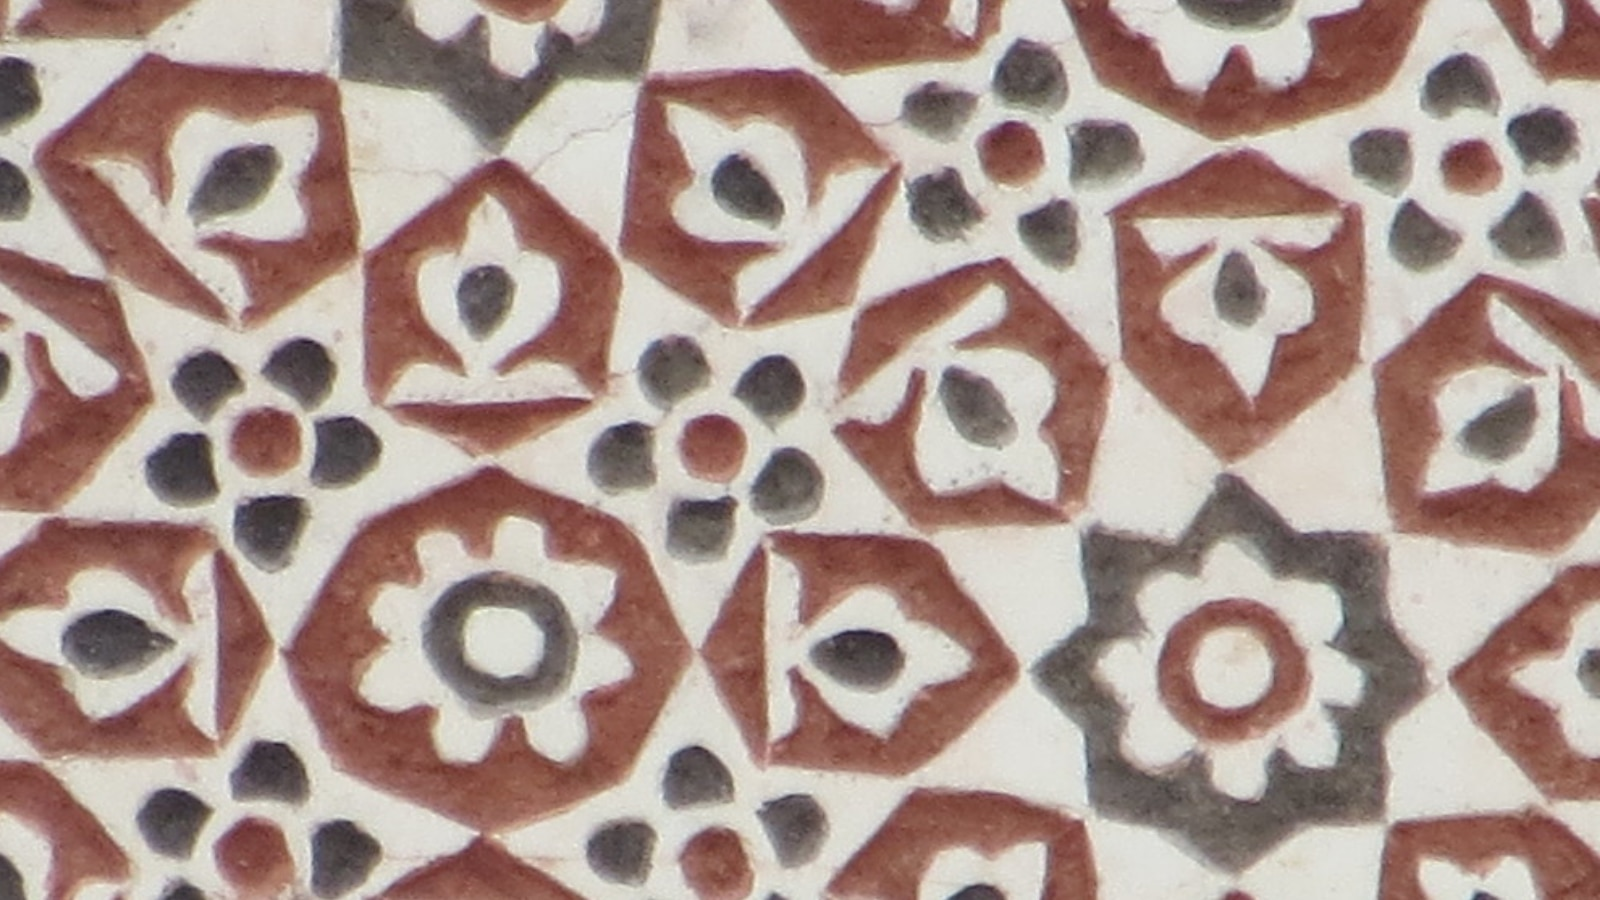 Plaster detail from inside the 16th century Batashewala Mughal Tomb Complex in Delhi, India. (Photo courtesy of the Cultural Heritage Center)